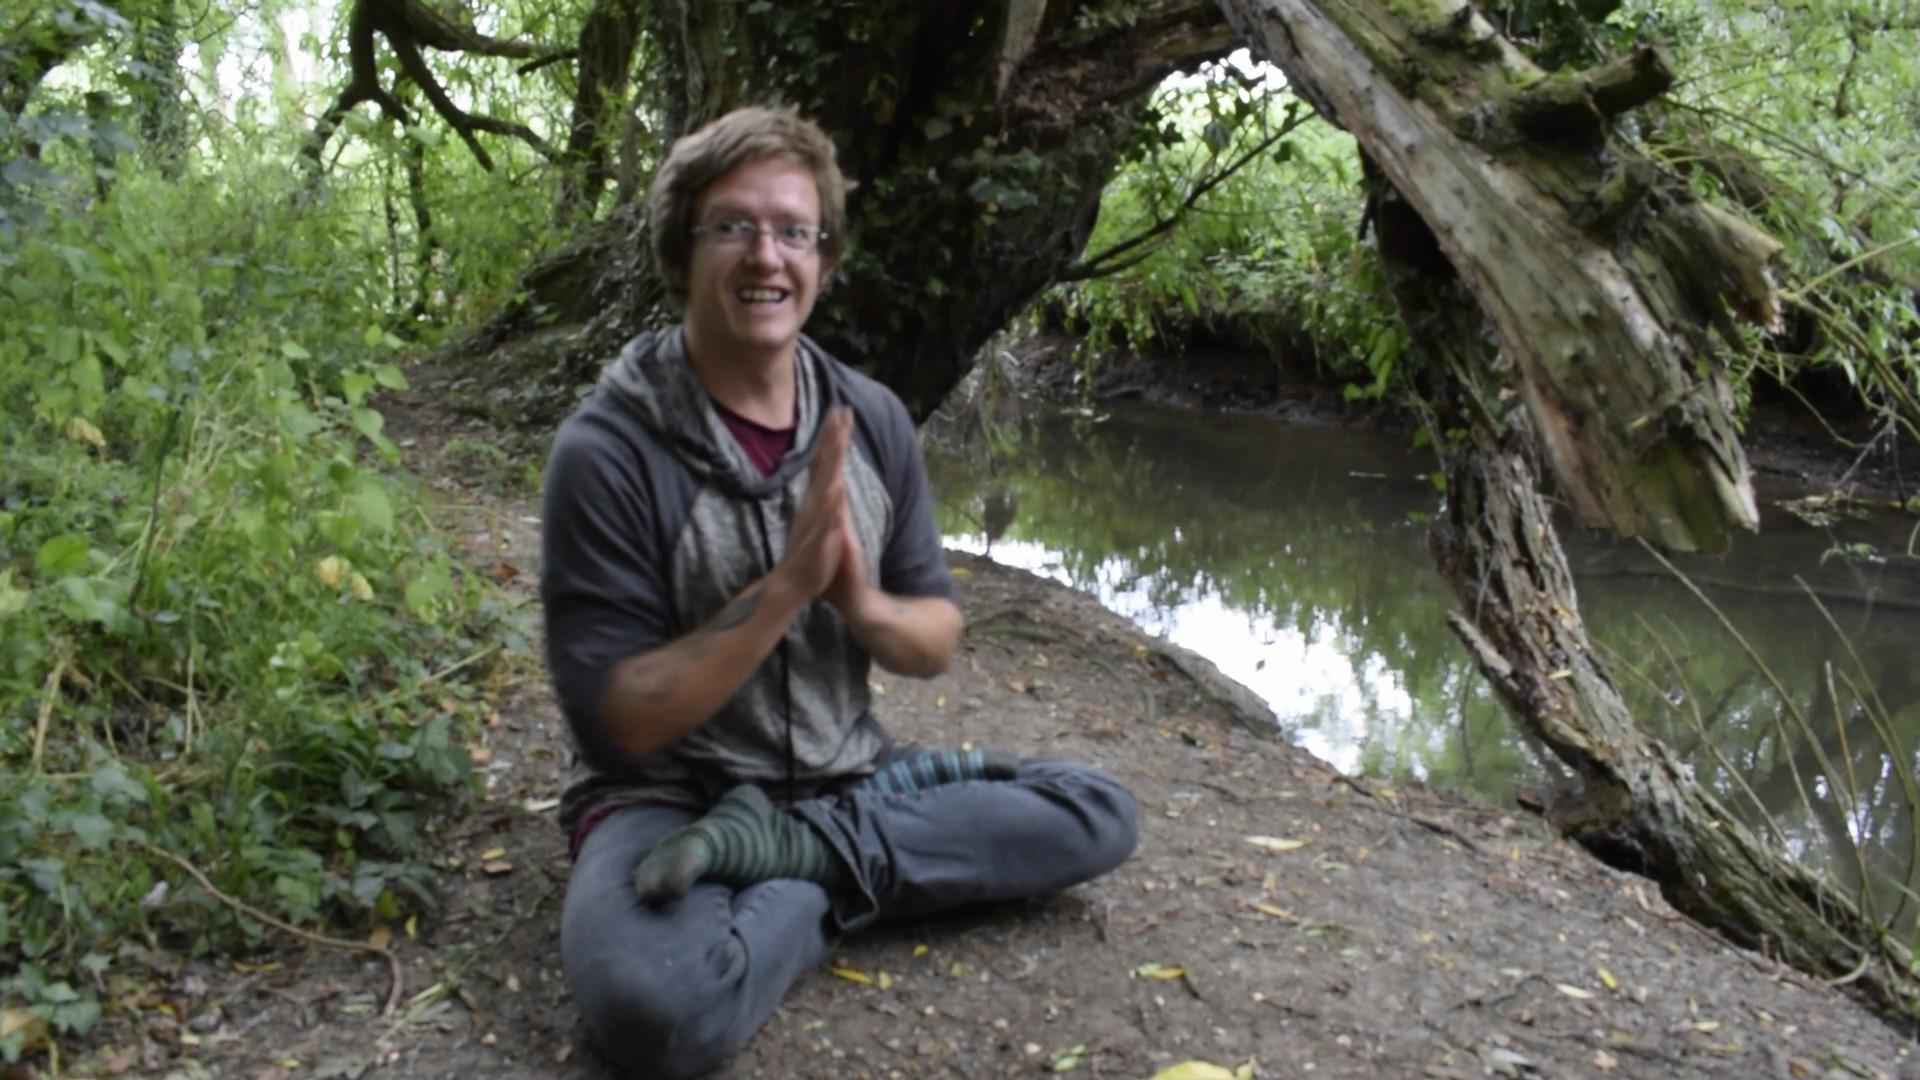 Picture of Laurence smiling by a river, his hands are in a Yoga Prayer position, Sudbury, Suffolk. Norwich